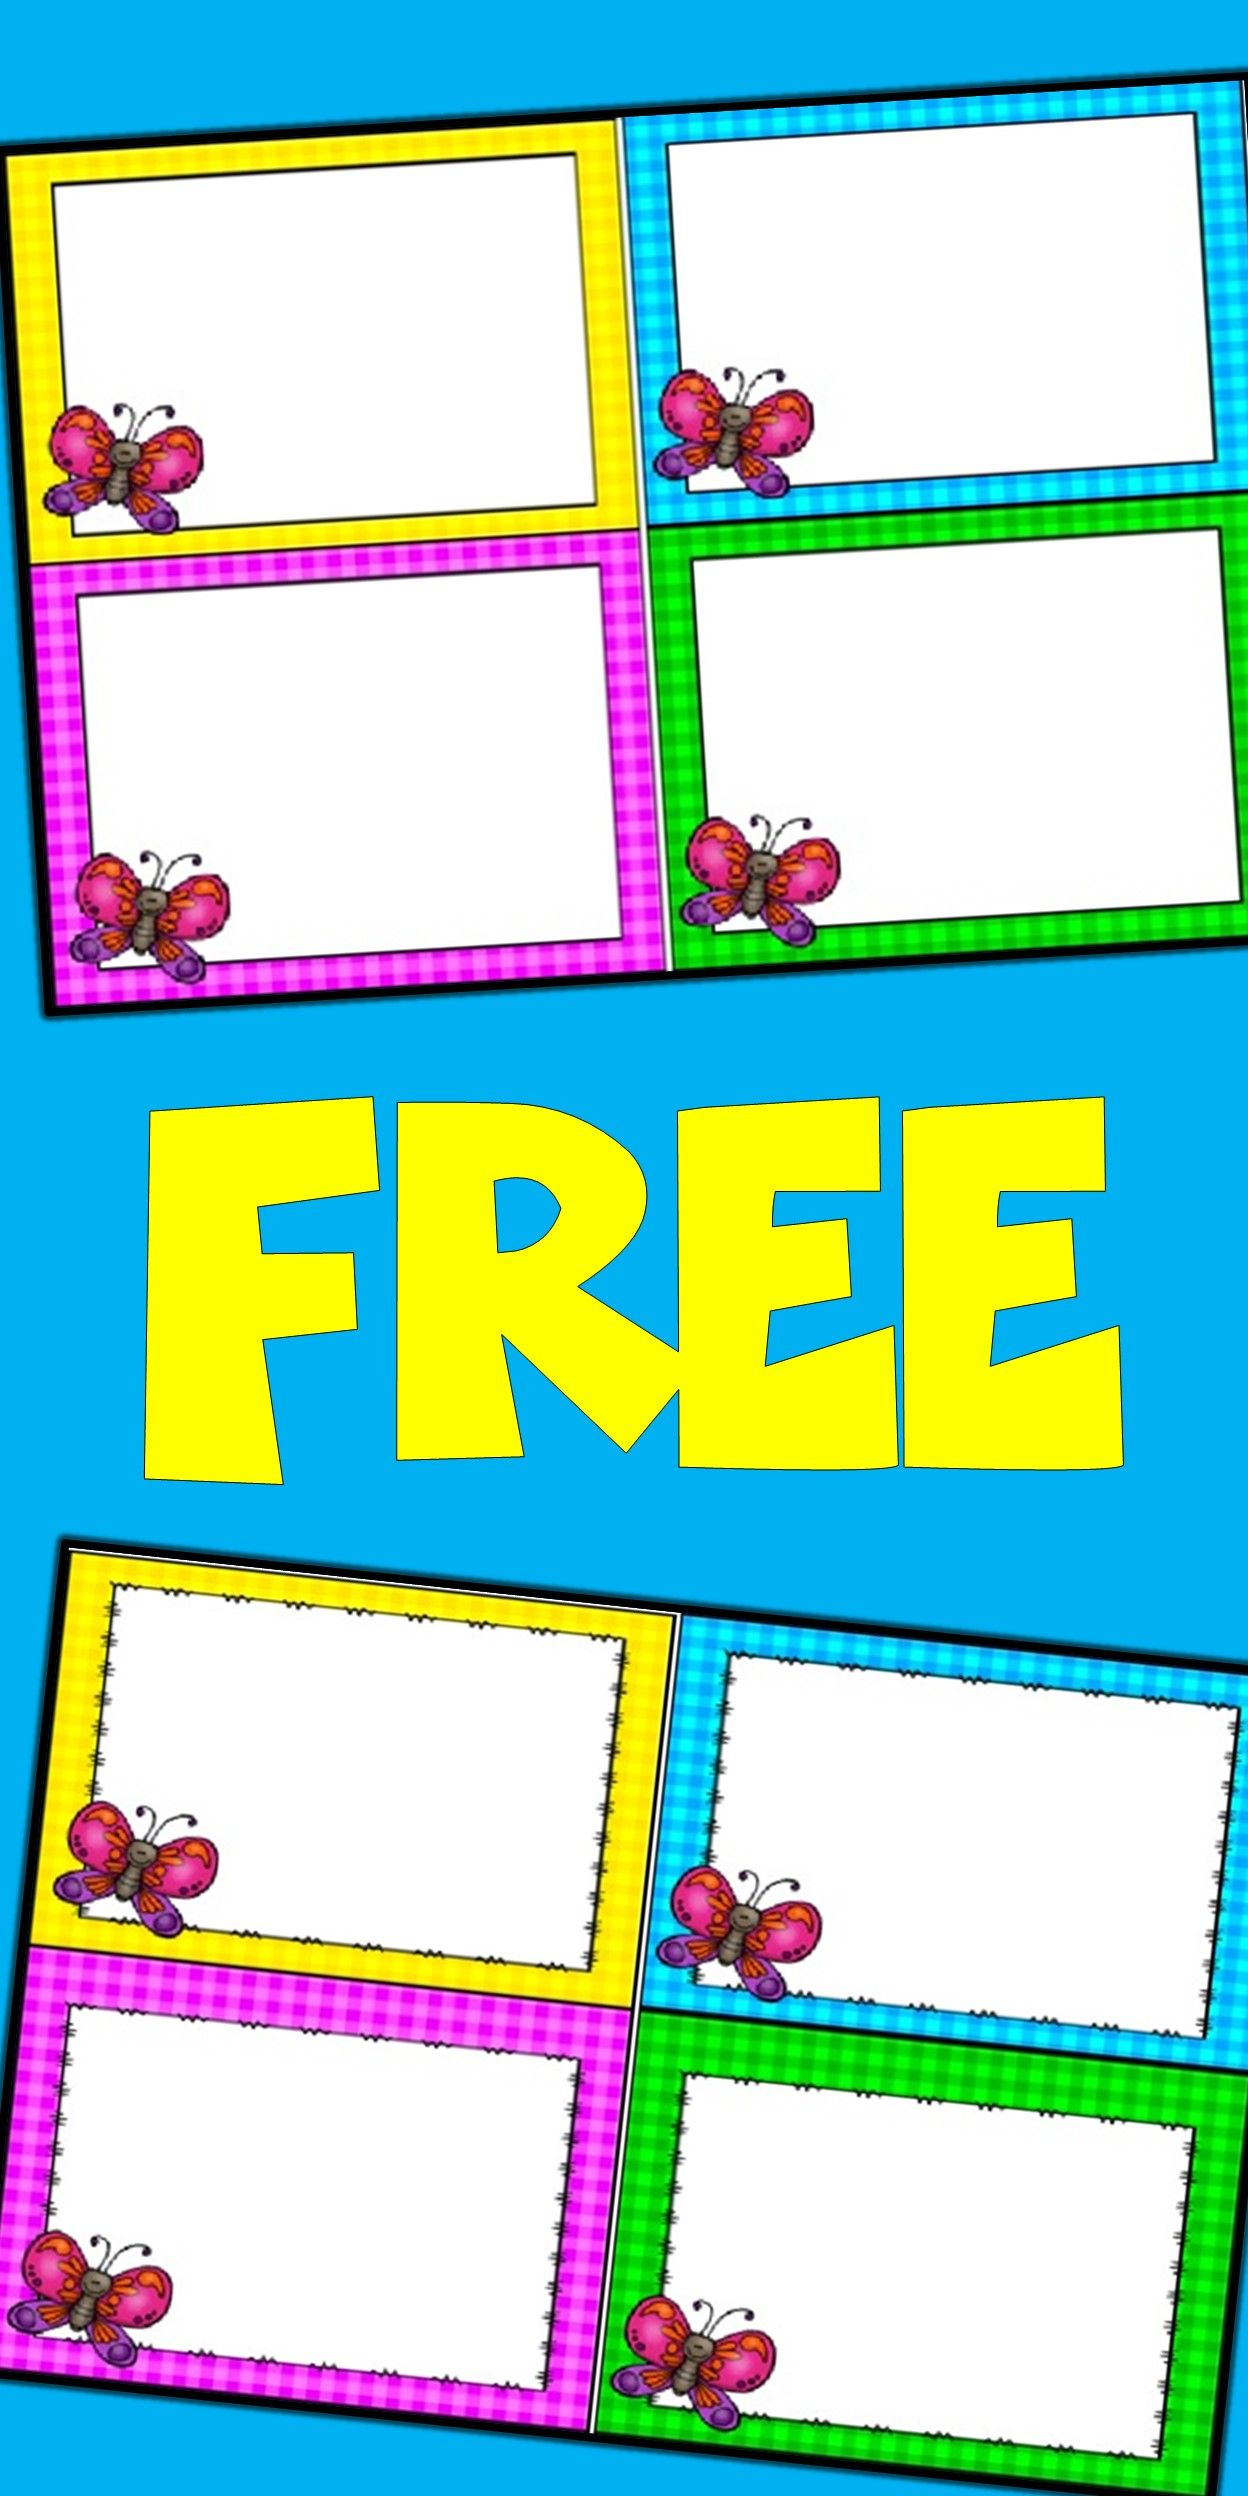 Free Editable Spring Card Templates Butterflies Pinterest Card